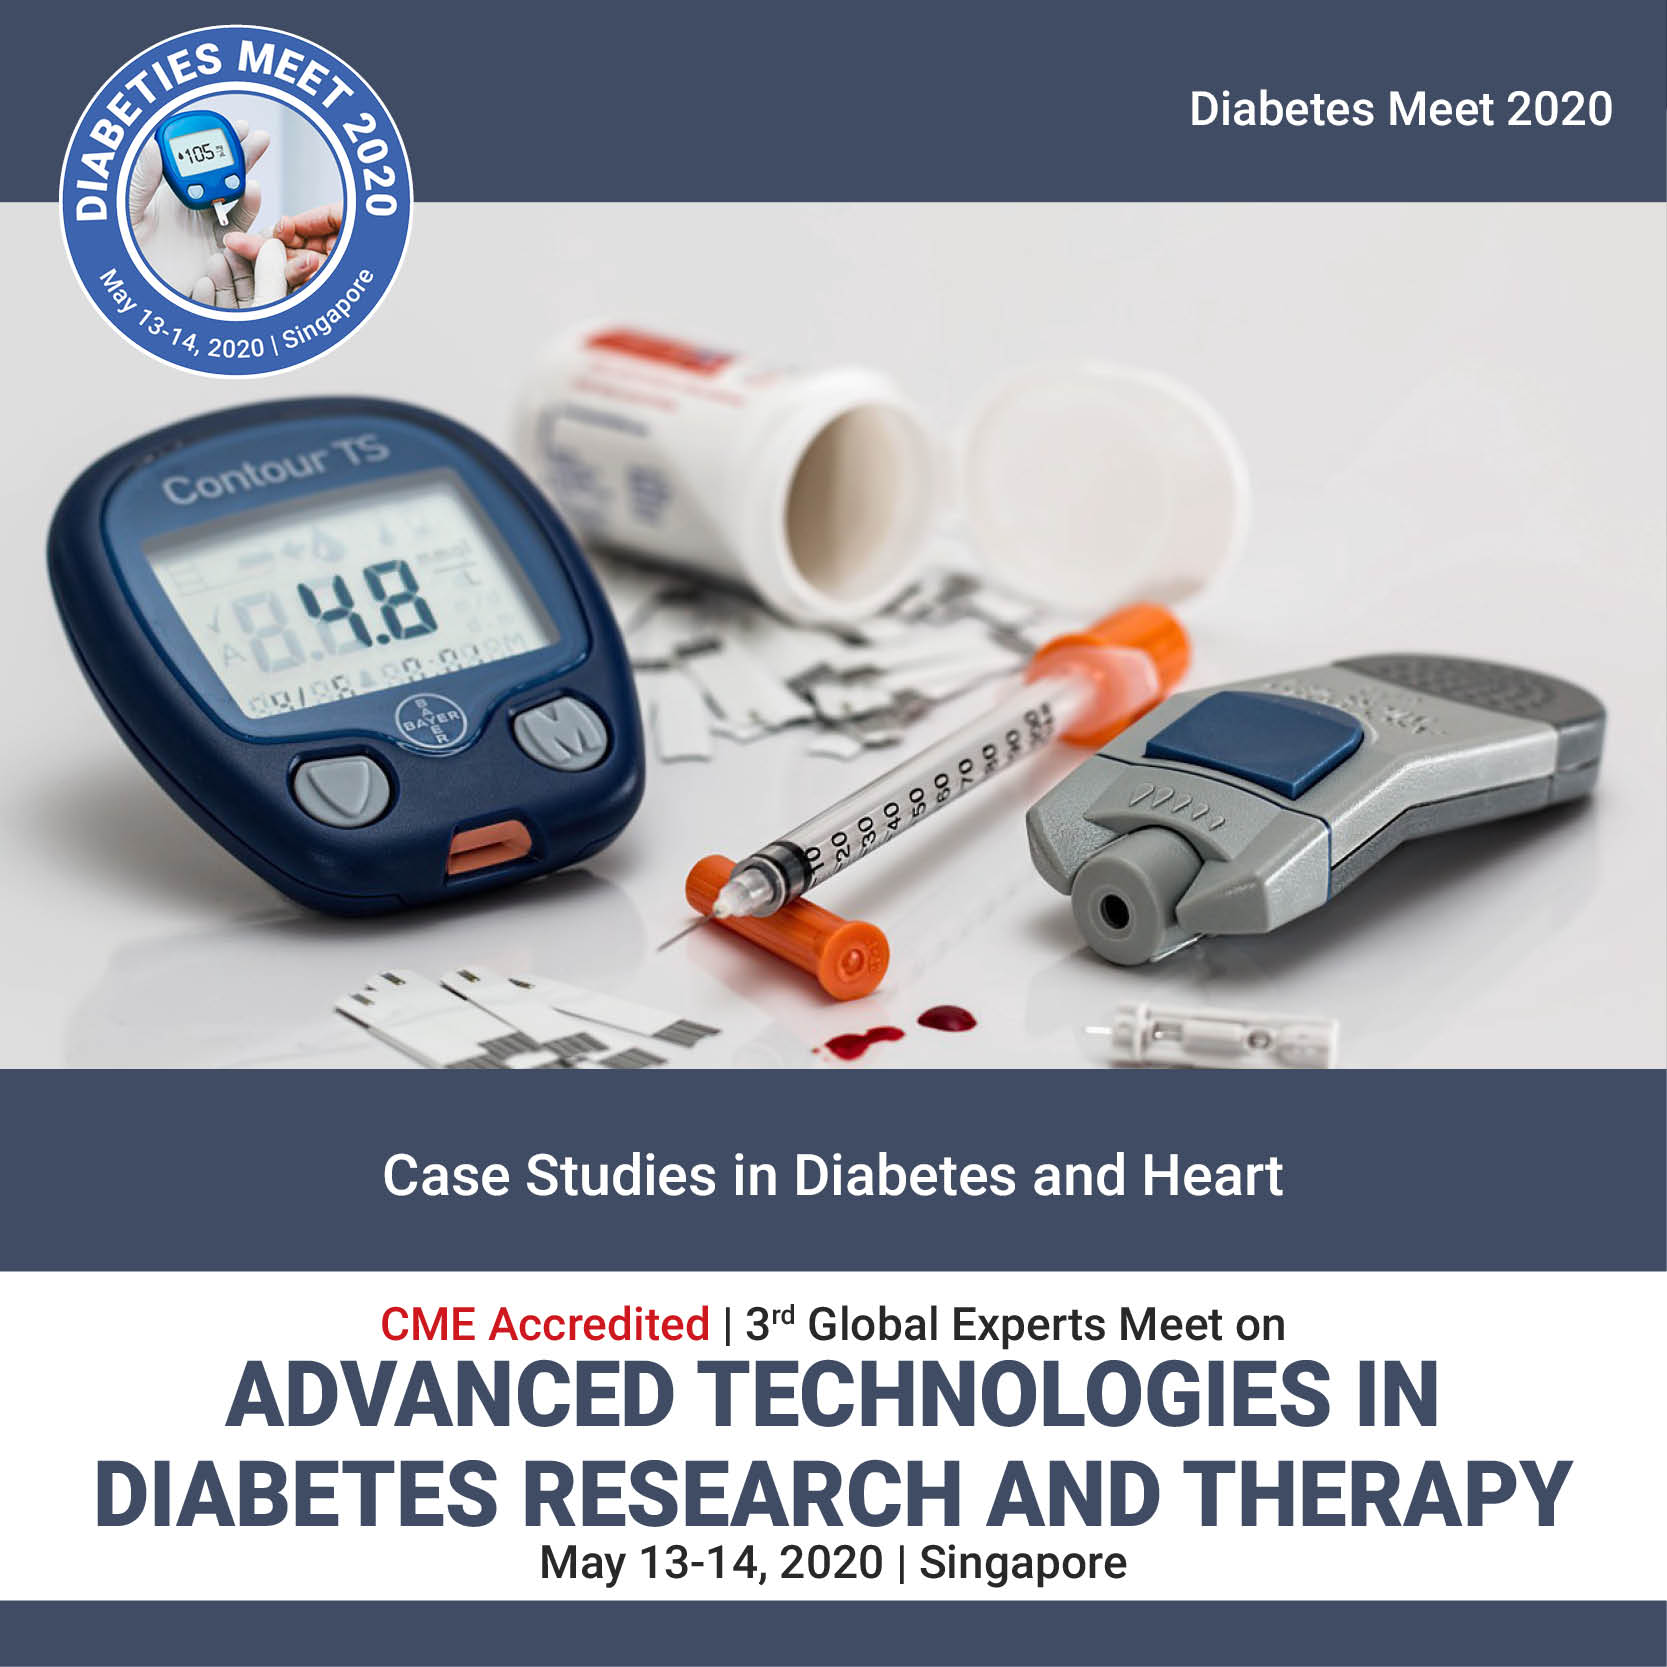 Case Studies in Diabetes and Heart Photo